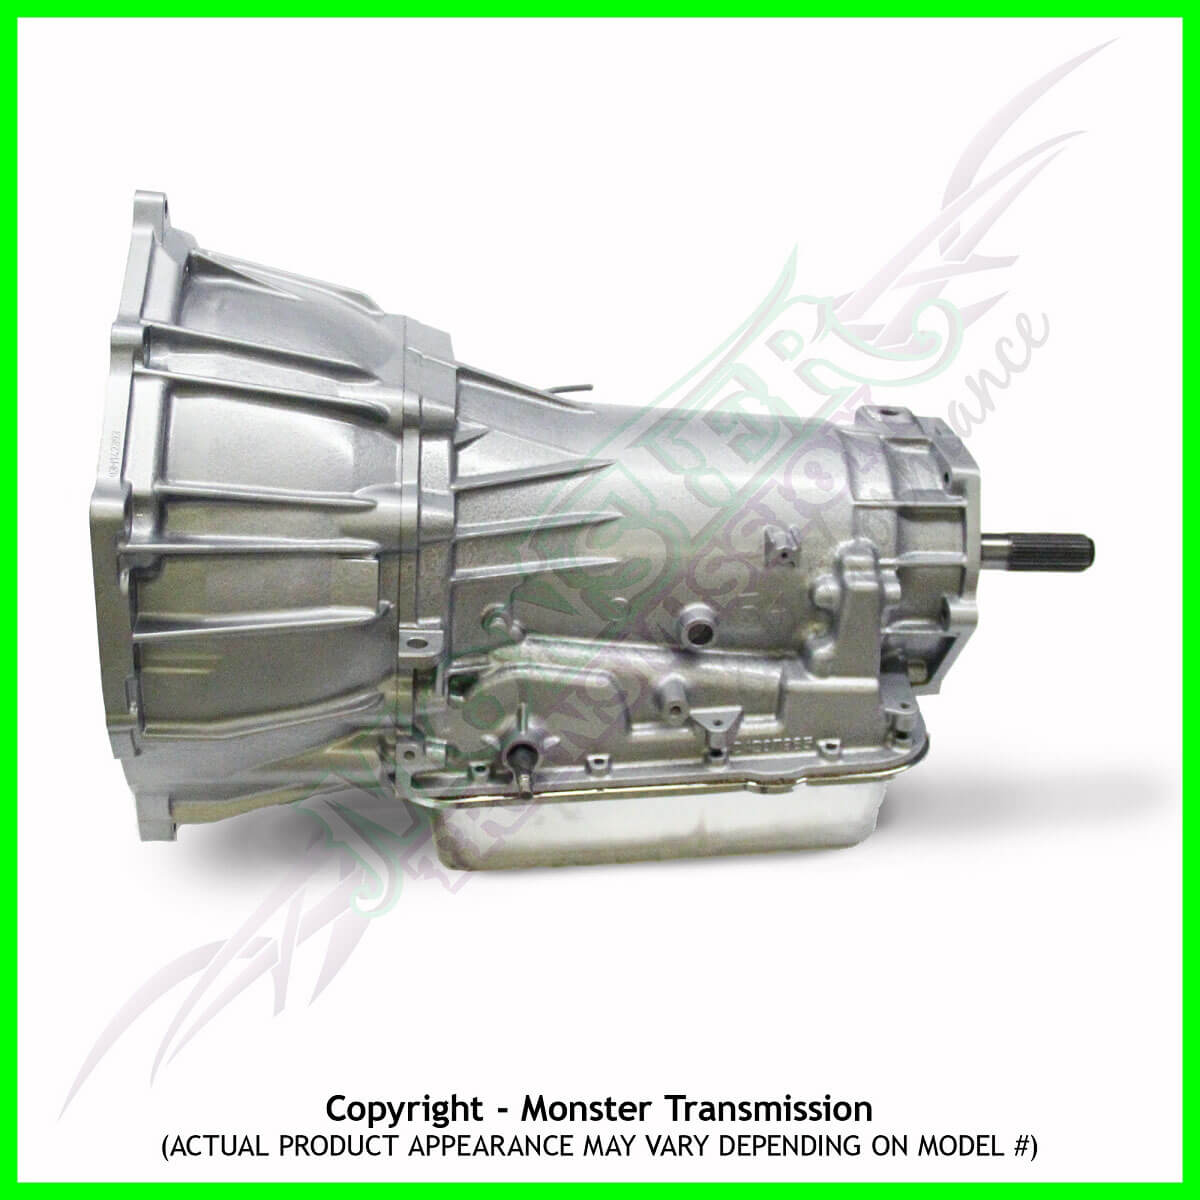 Ls1 Engine Transmission Package: 4L60E 4L65E Transmission Remanufactured 4X4 Heavy Duty 4.8